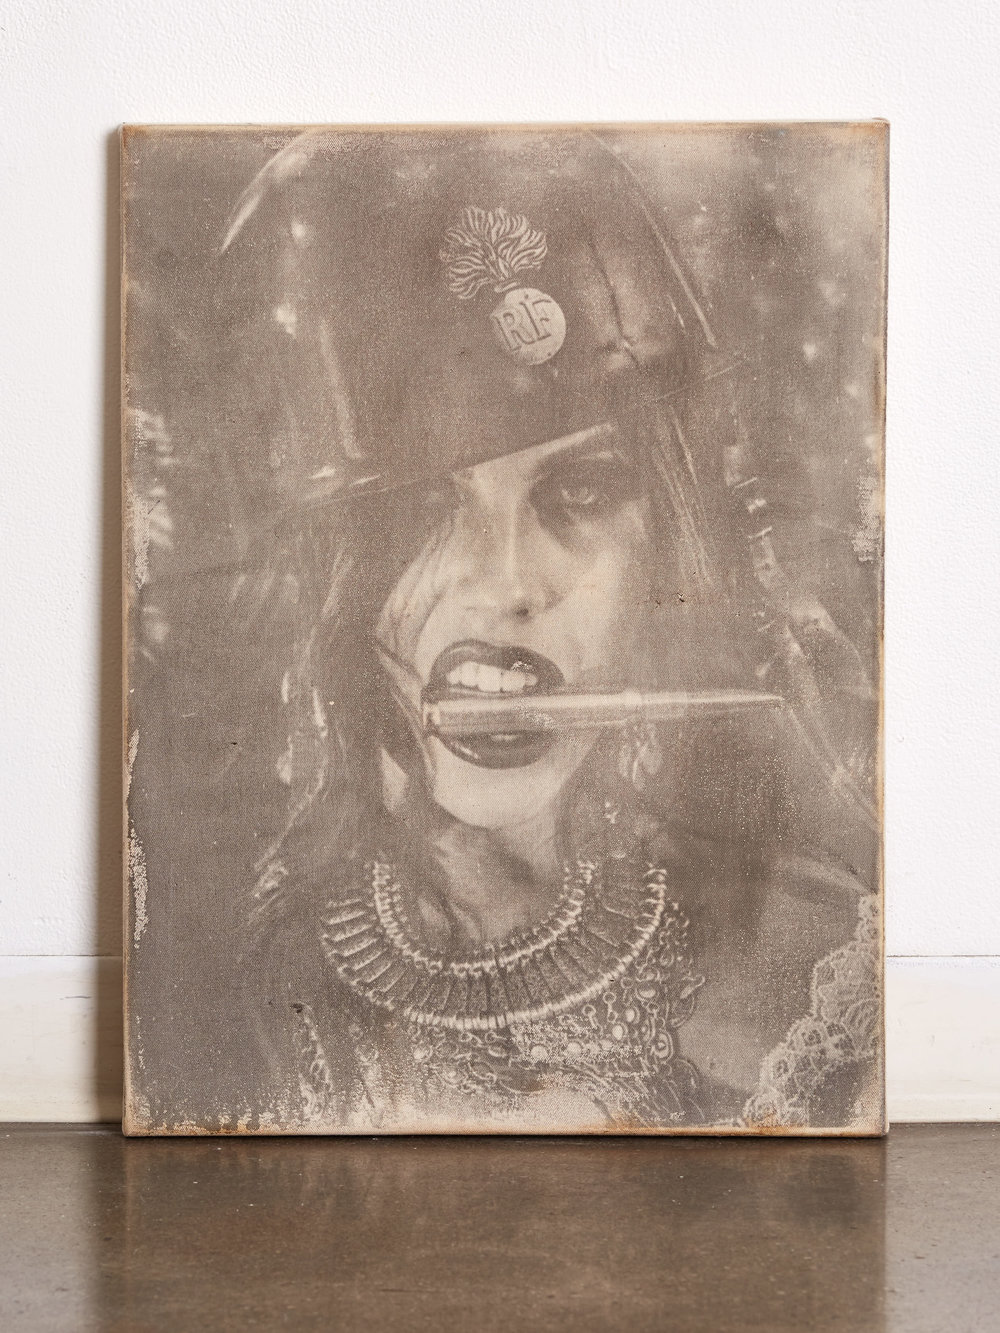 "Bite the Bullet     18x24""   Experimental Low Contrast Emulsion  Liquid Emulsion Painted on Raw Canvas, Hand-Stretched over 1.5"" Thick Wood Frame   Ingredients:  Photo (One Femme Fetale, One .50 Caliber Bullet, One French WWI Helmet) Print (Canvas, experimental emulsion, Tecate, Proprietary Chemical Blend & Process)"